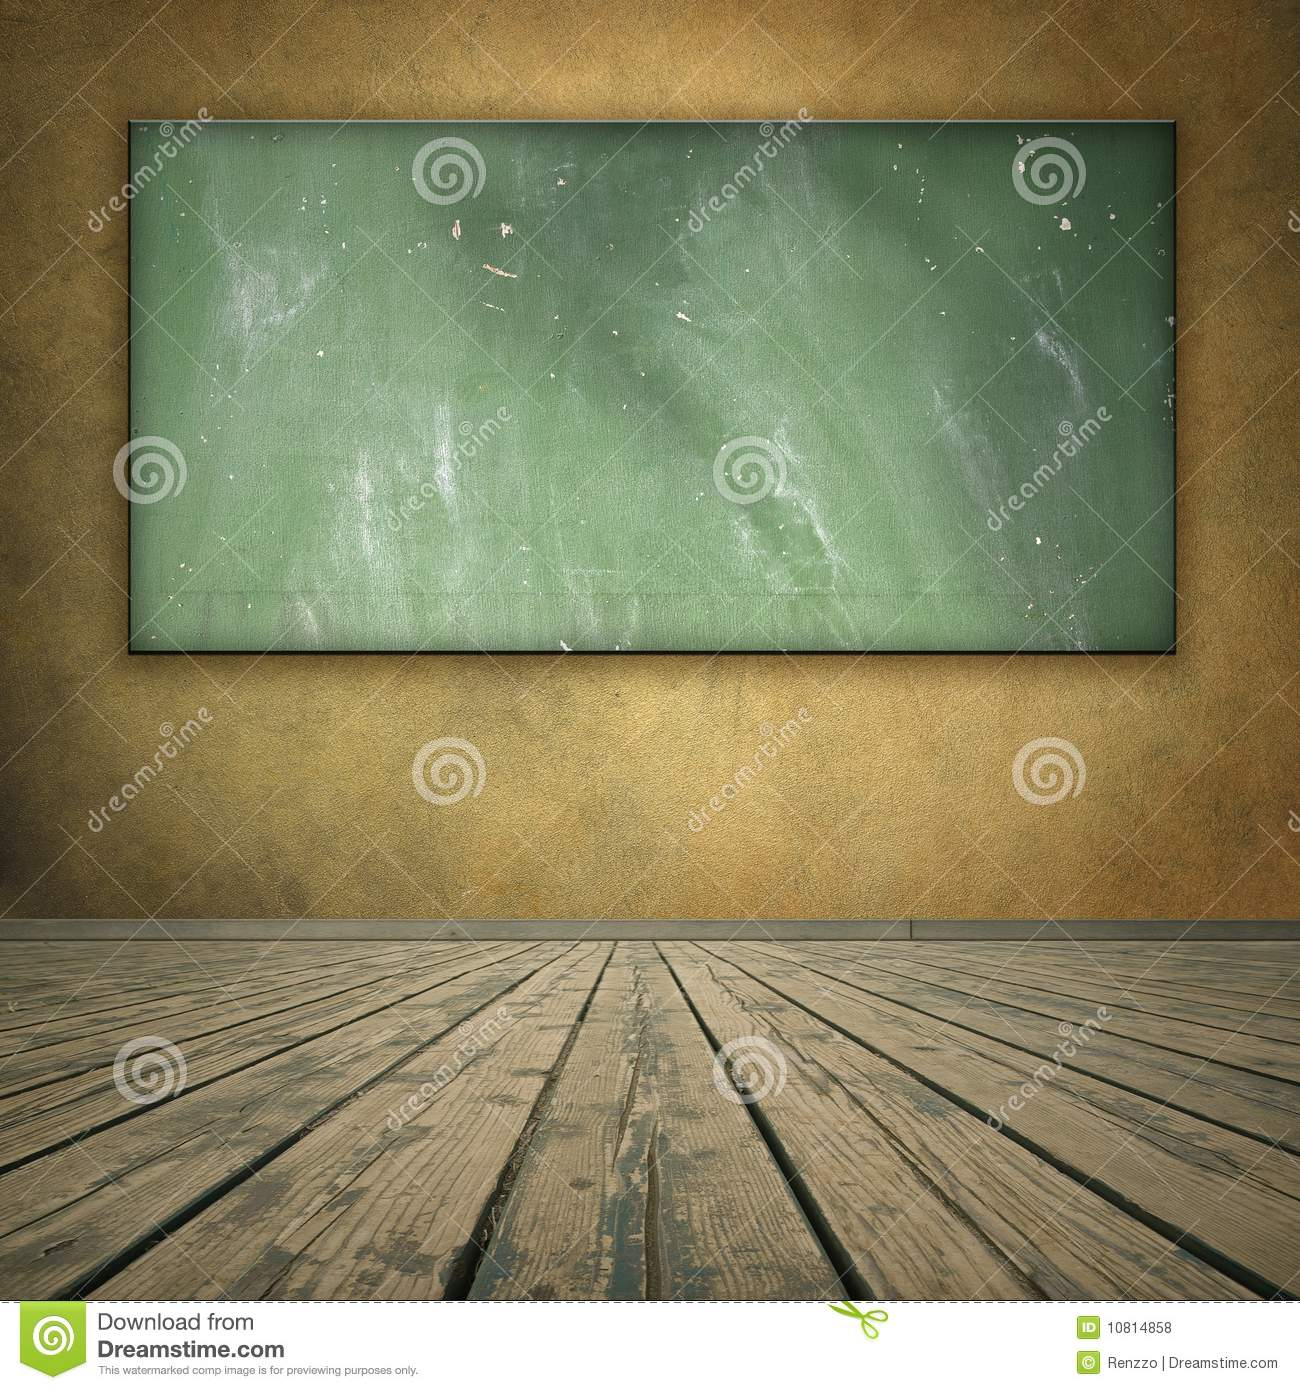 Classroom style grungy room with blackboard